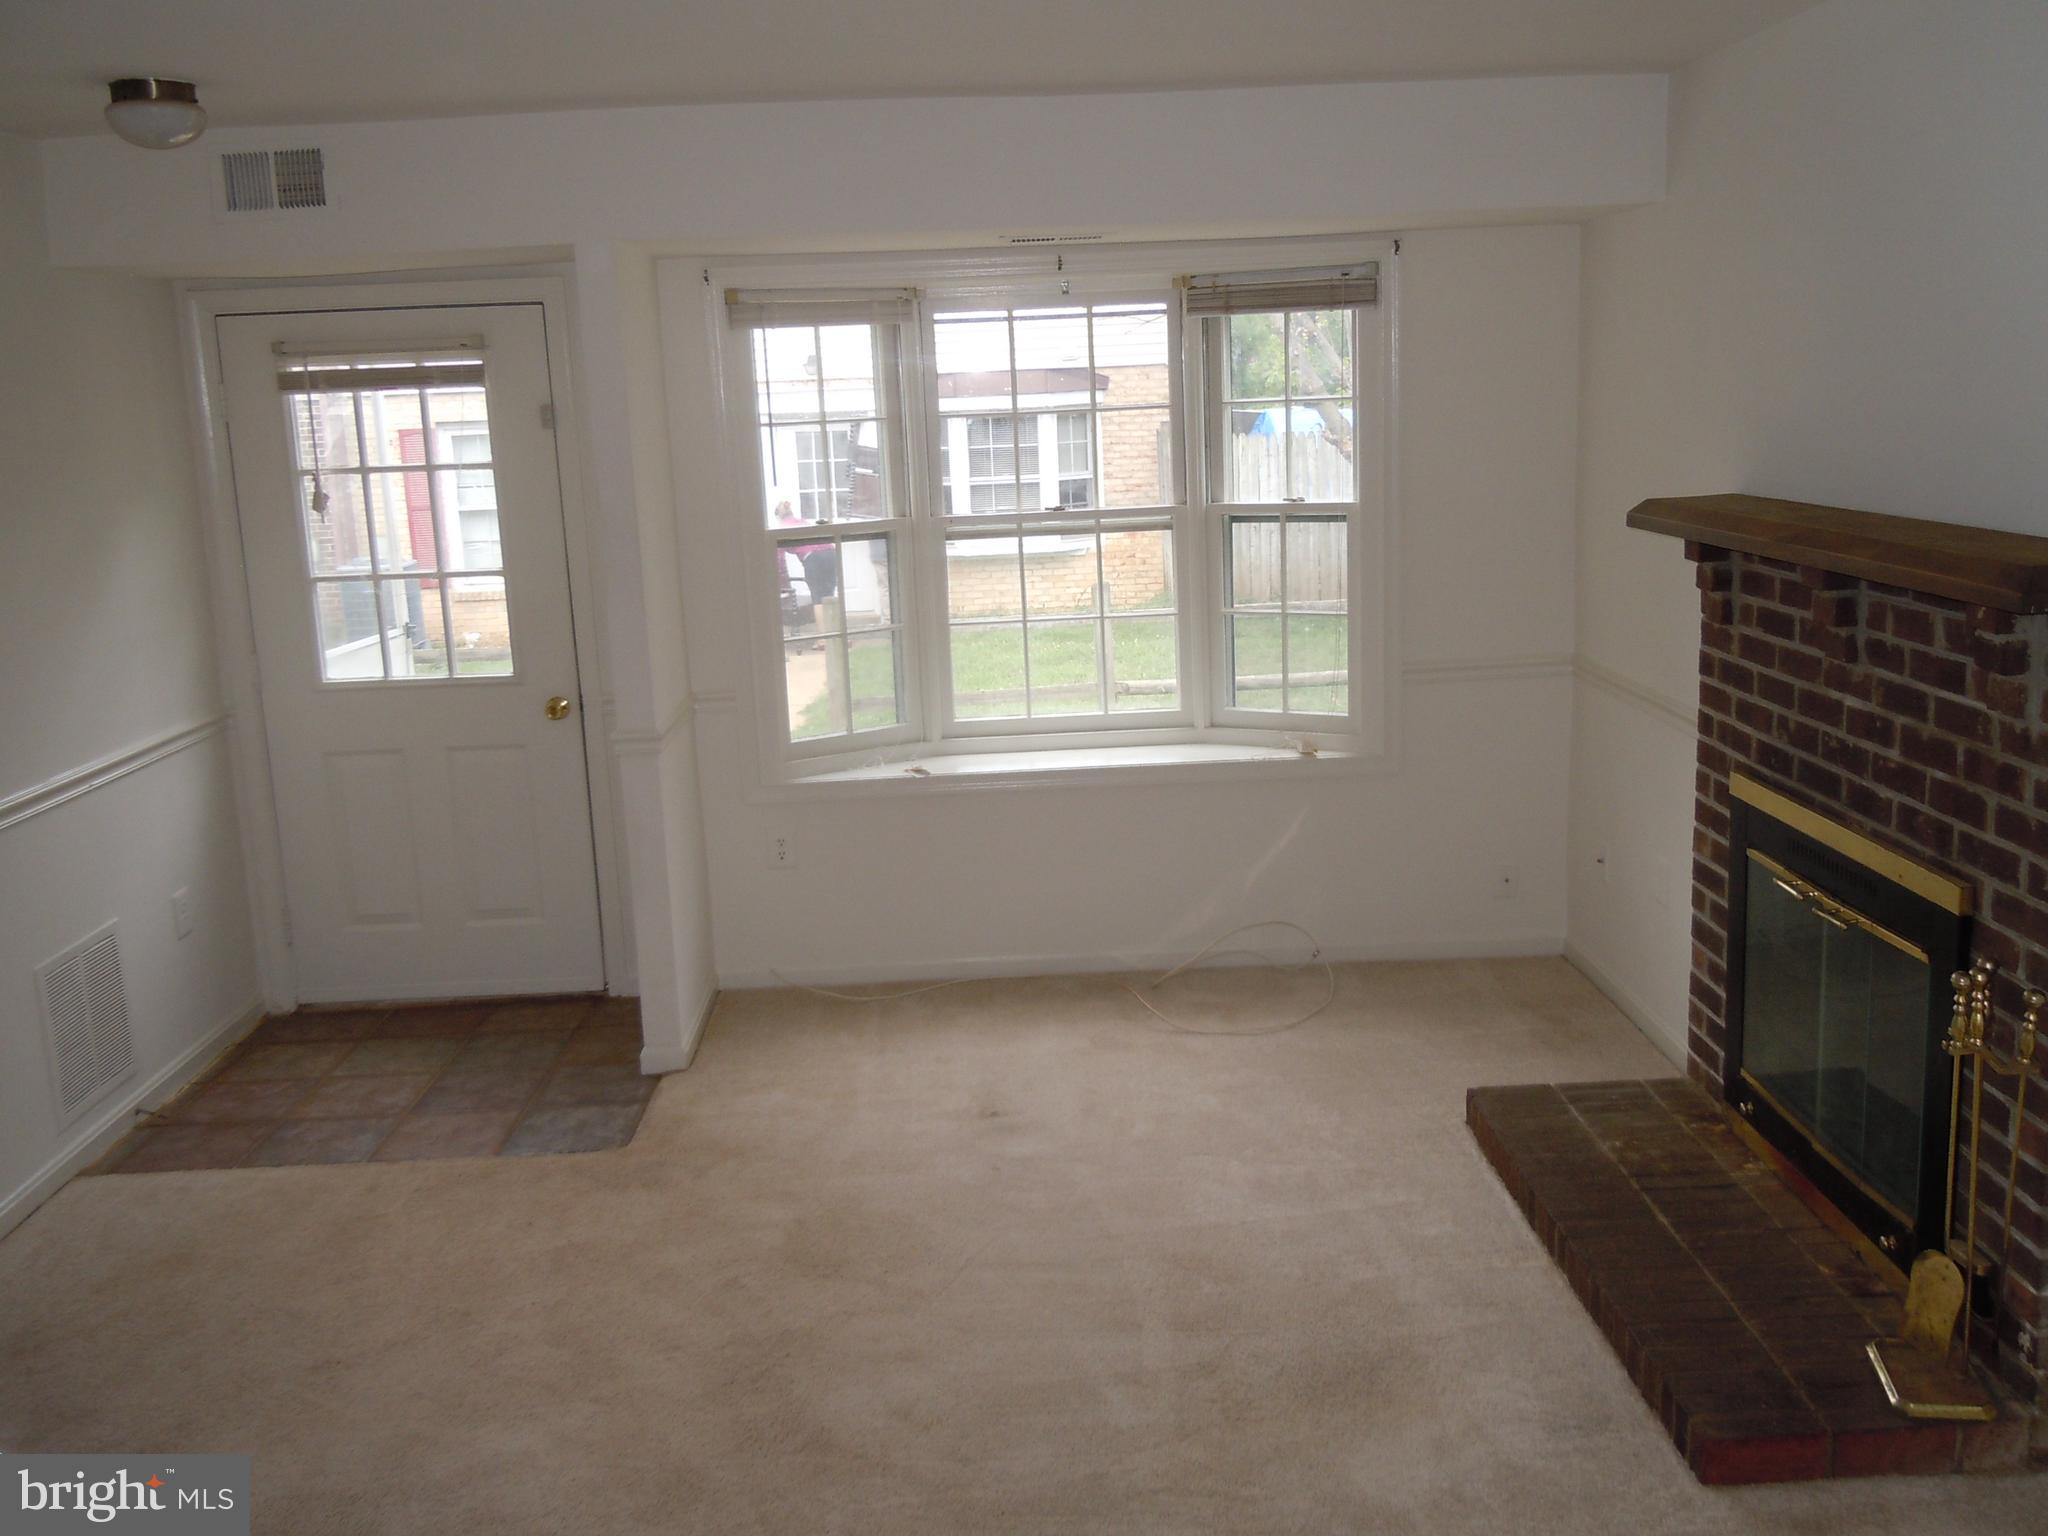 Great end unit townhouse bay window Spacious window and wood burning fireplace in living room.Spacio